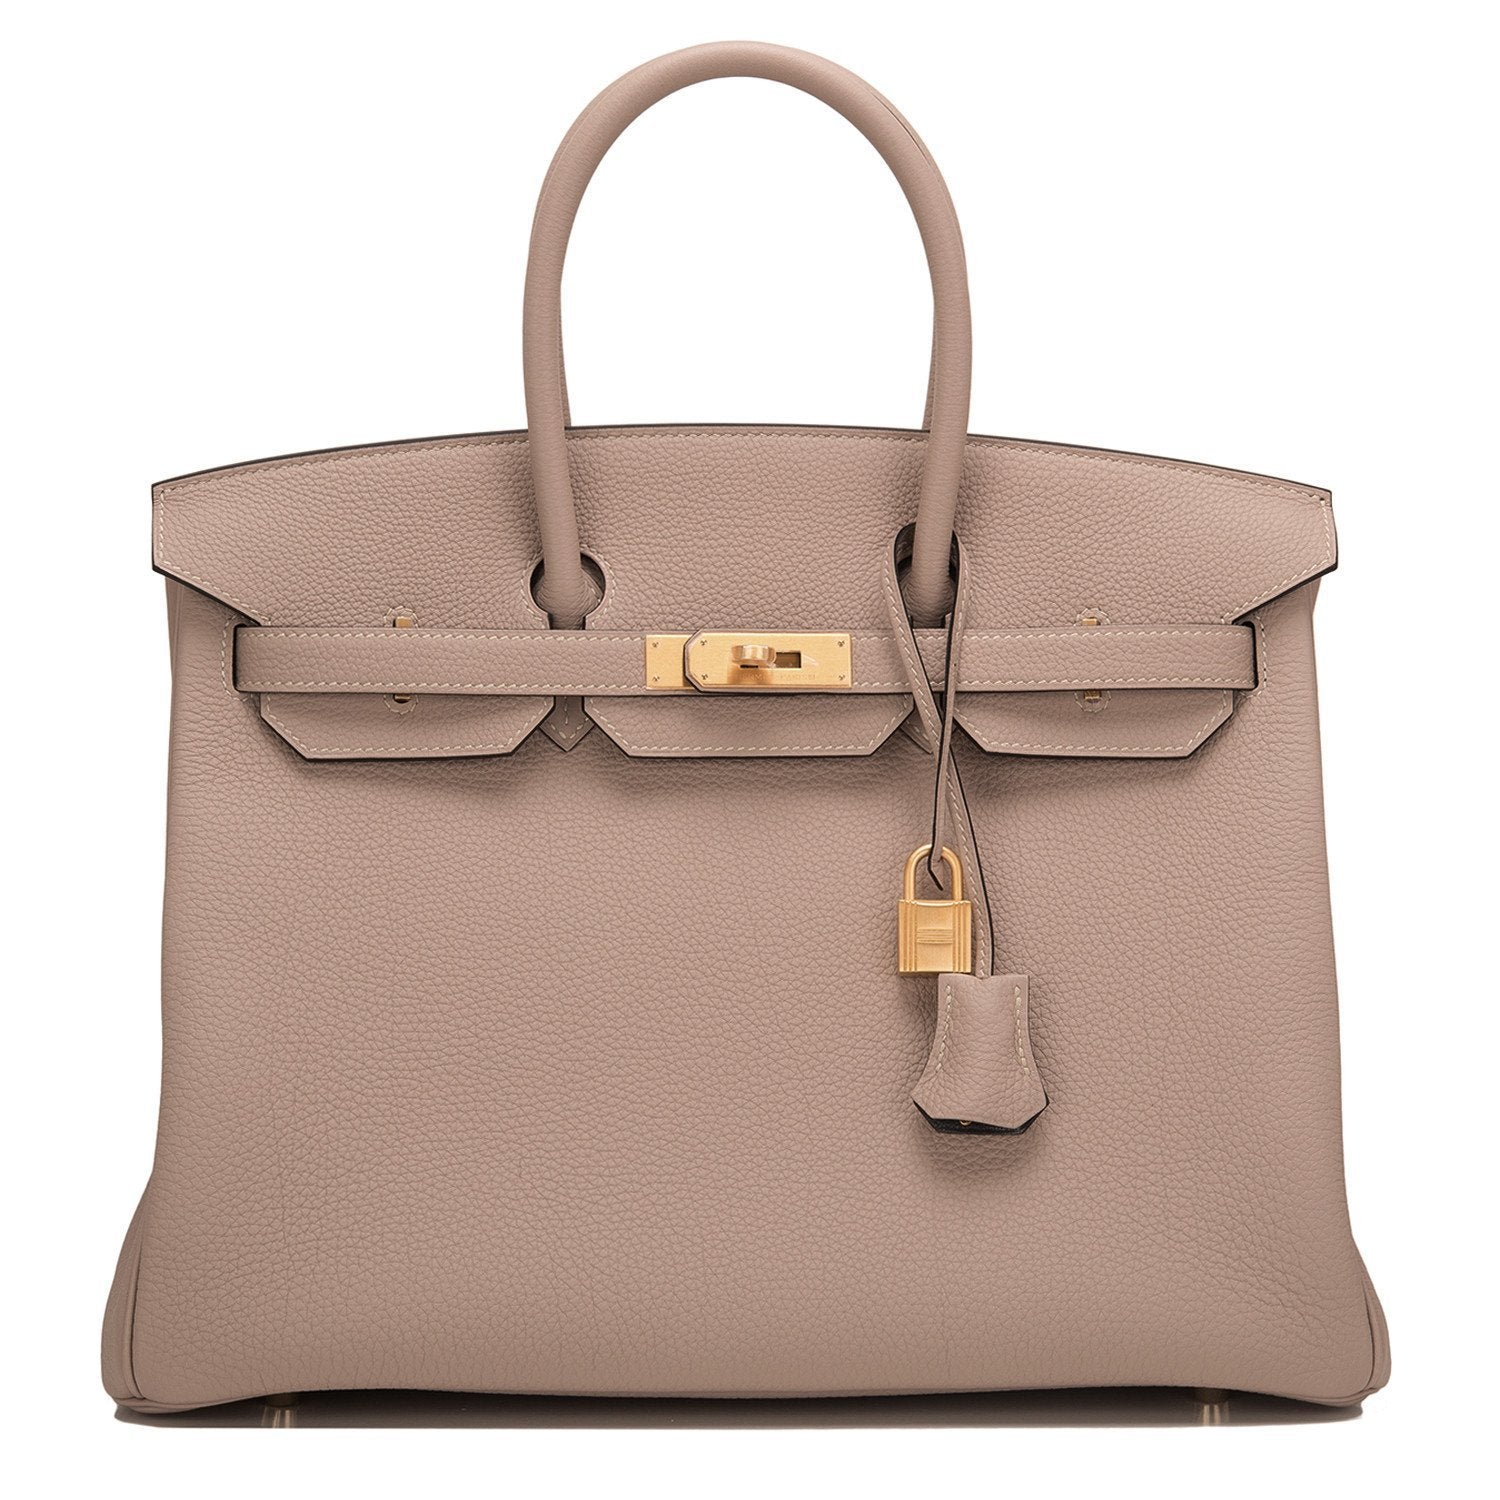 official store hermes hss bi color gris tourterelle and ardoise togo birkin  35cm brushed gold hardware d6dea22bd8c79